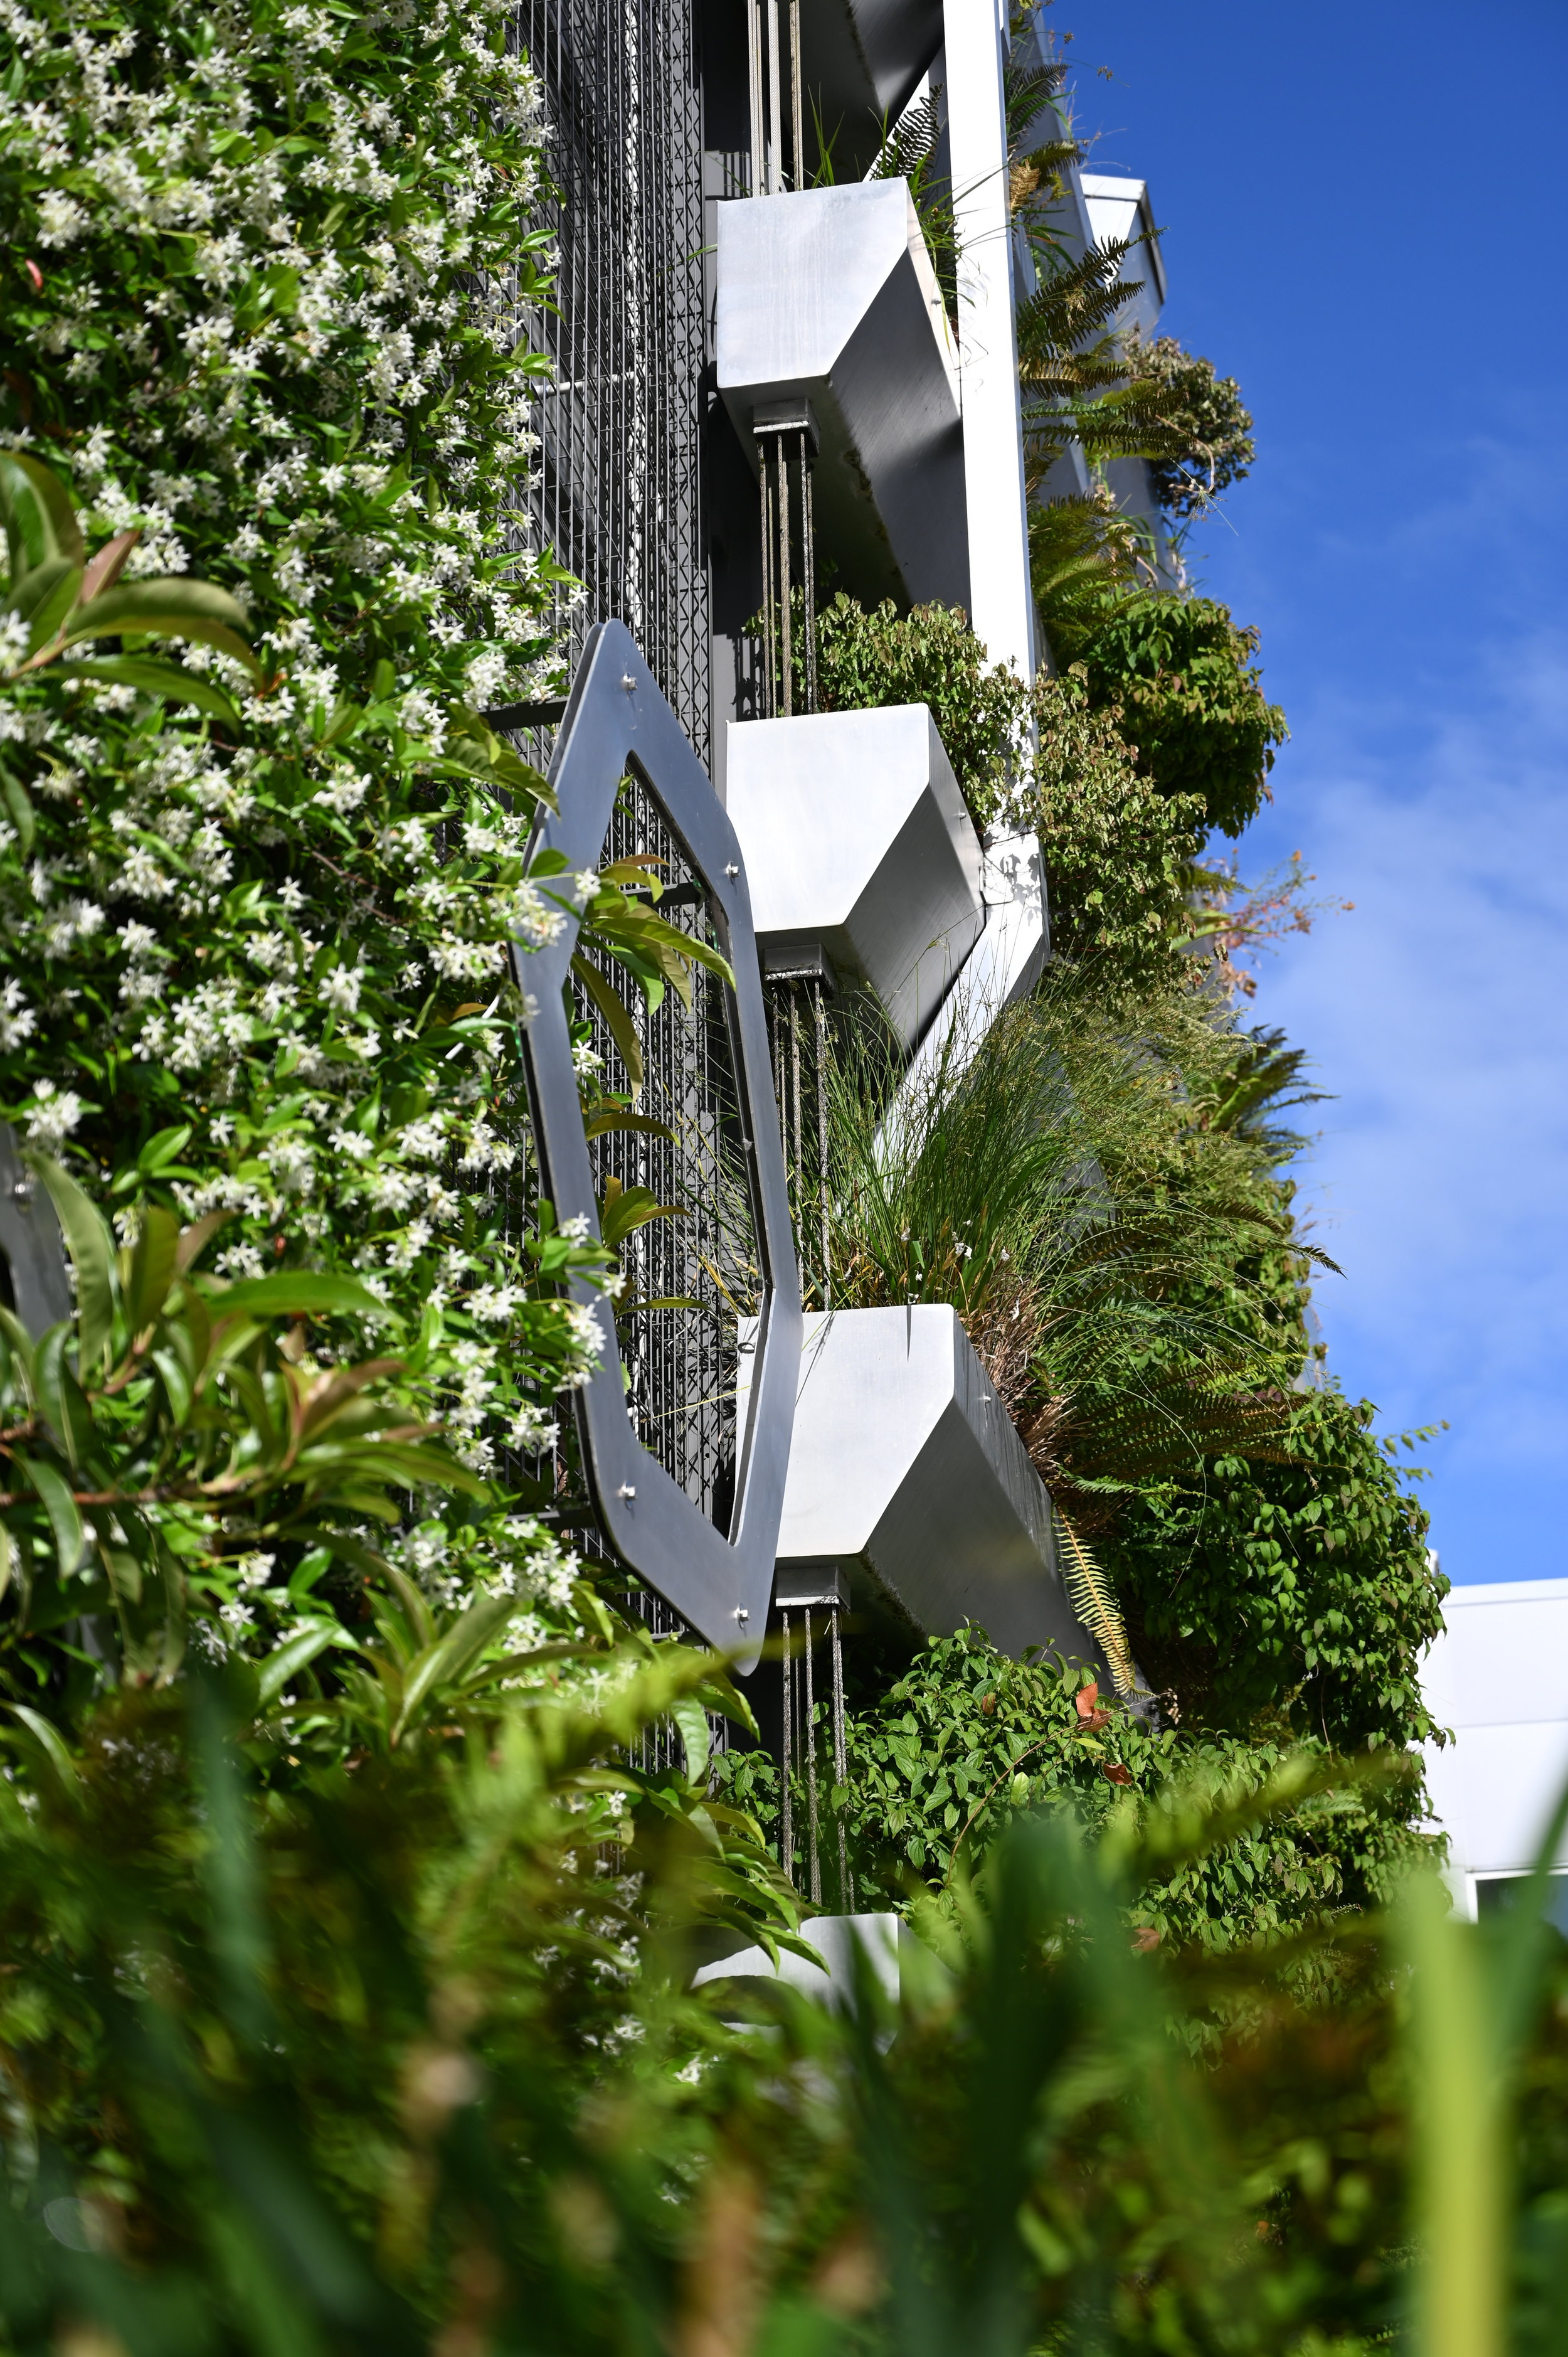 Mature sedges and star jasmine fill a metal structure on a sunny day